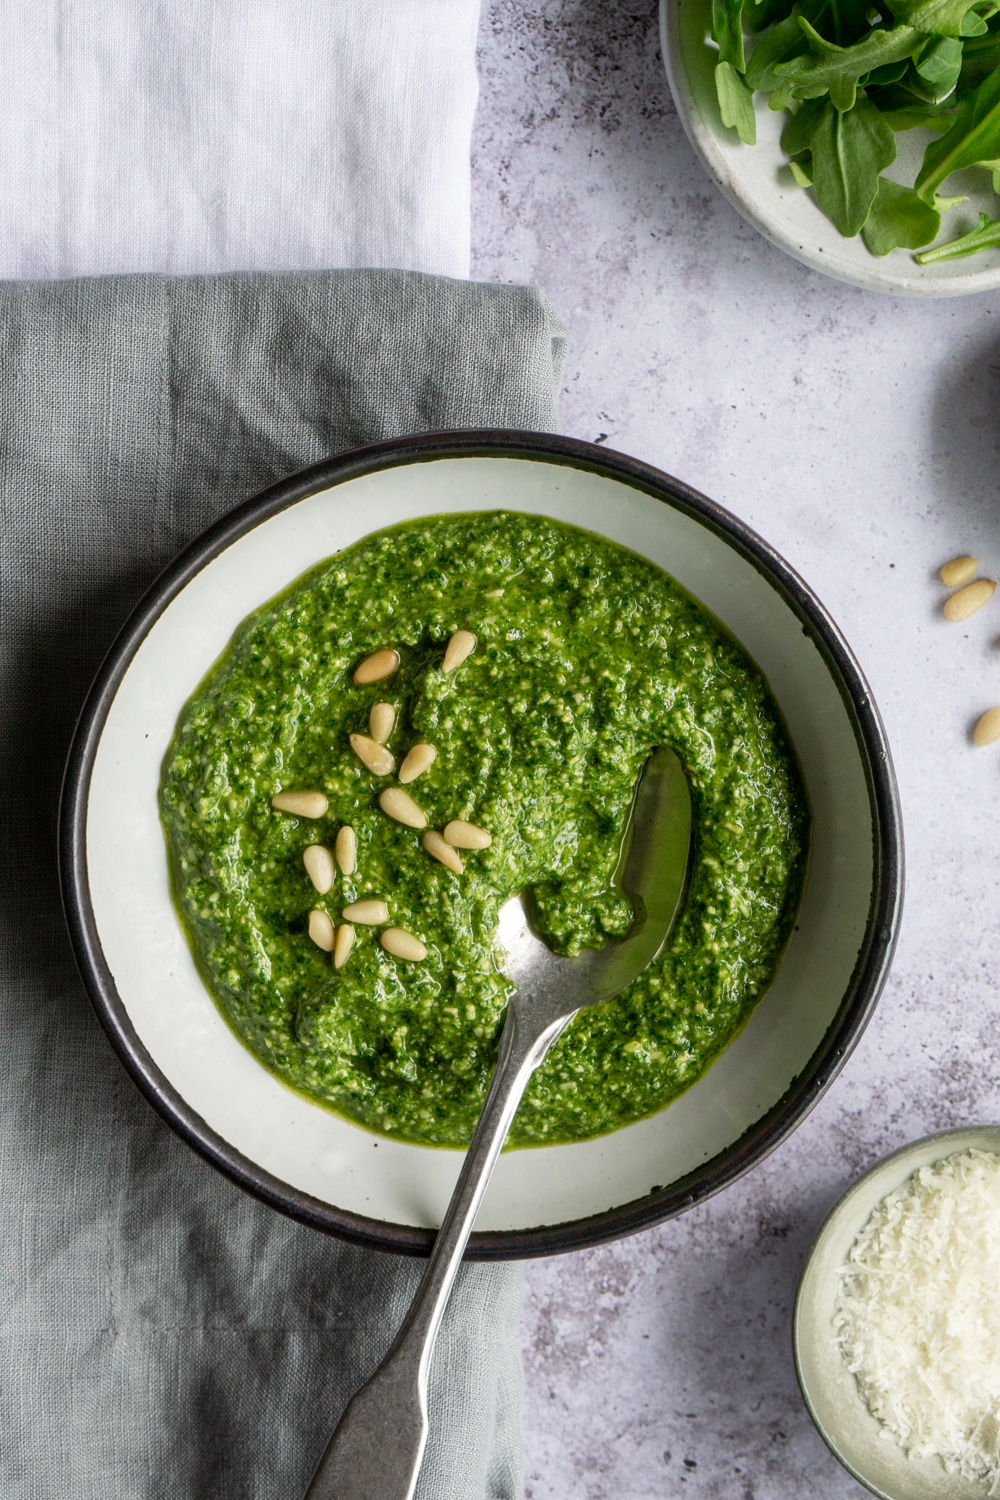 White bowl of arugula pesto topped with pine nuts, and a spoon in the bowl